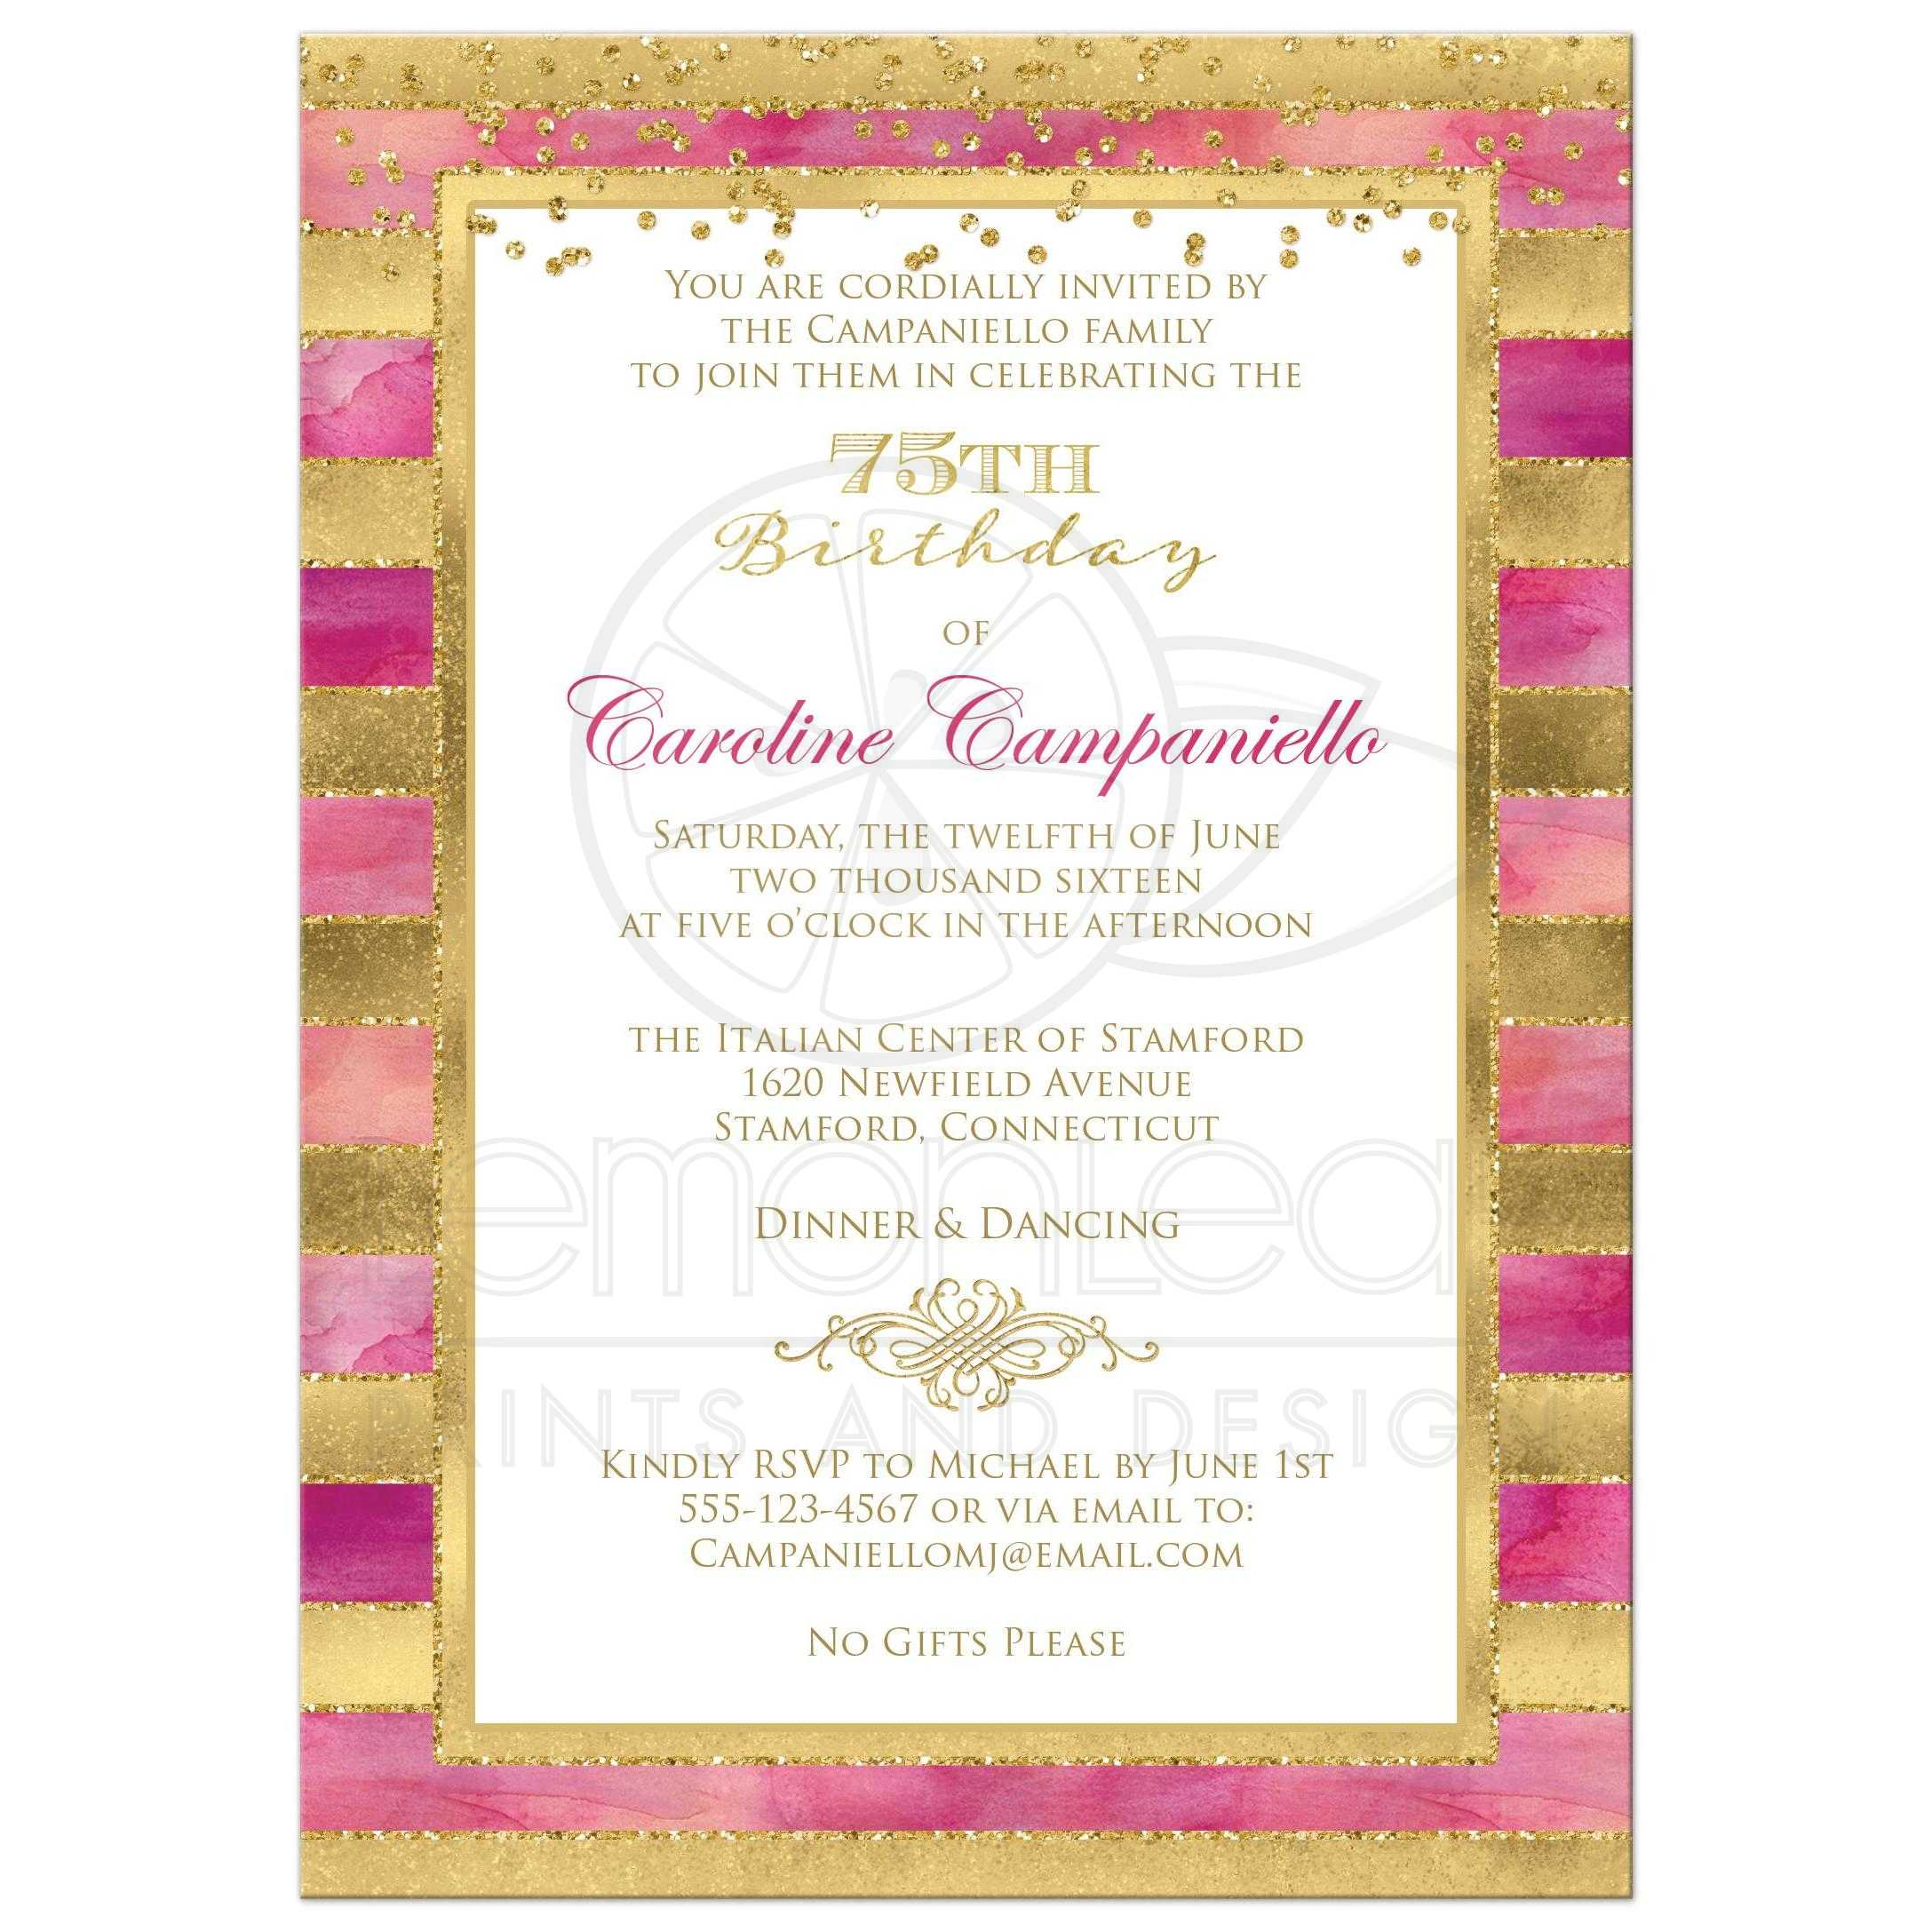 th Birthday Invitation Pink Watercolors Gold Stripes